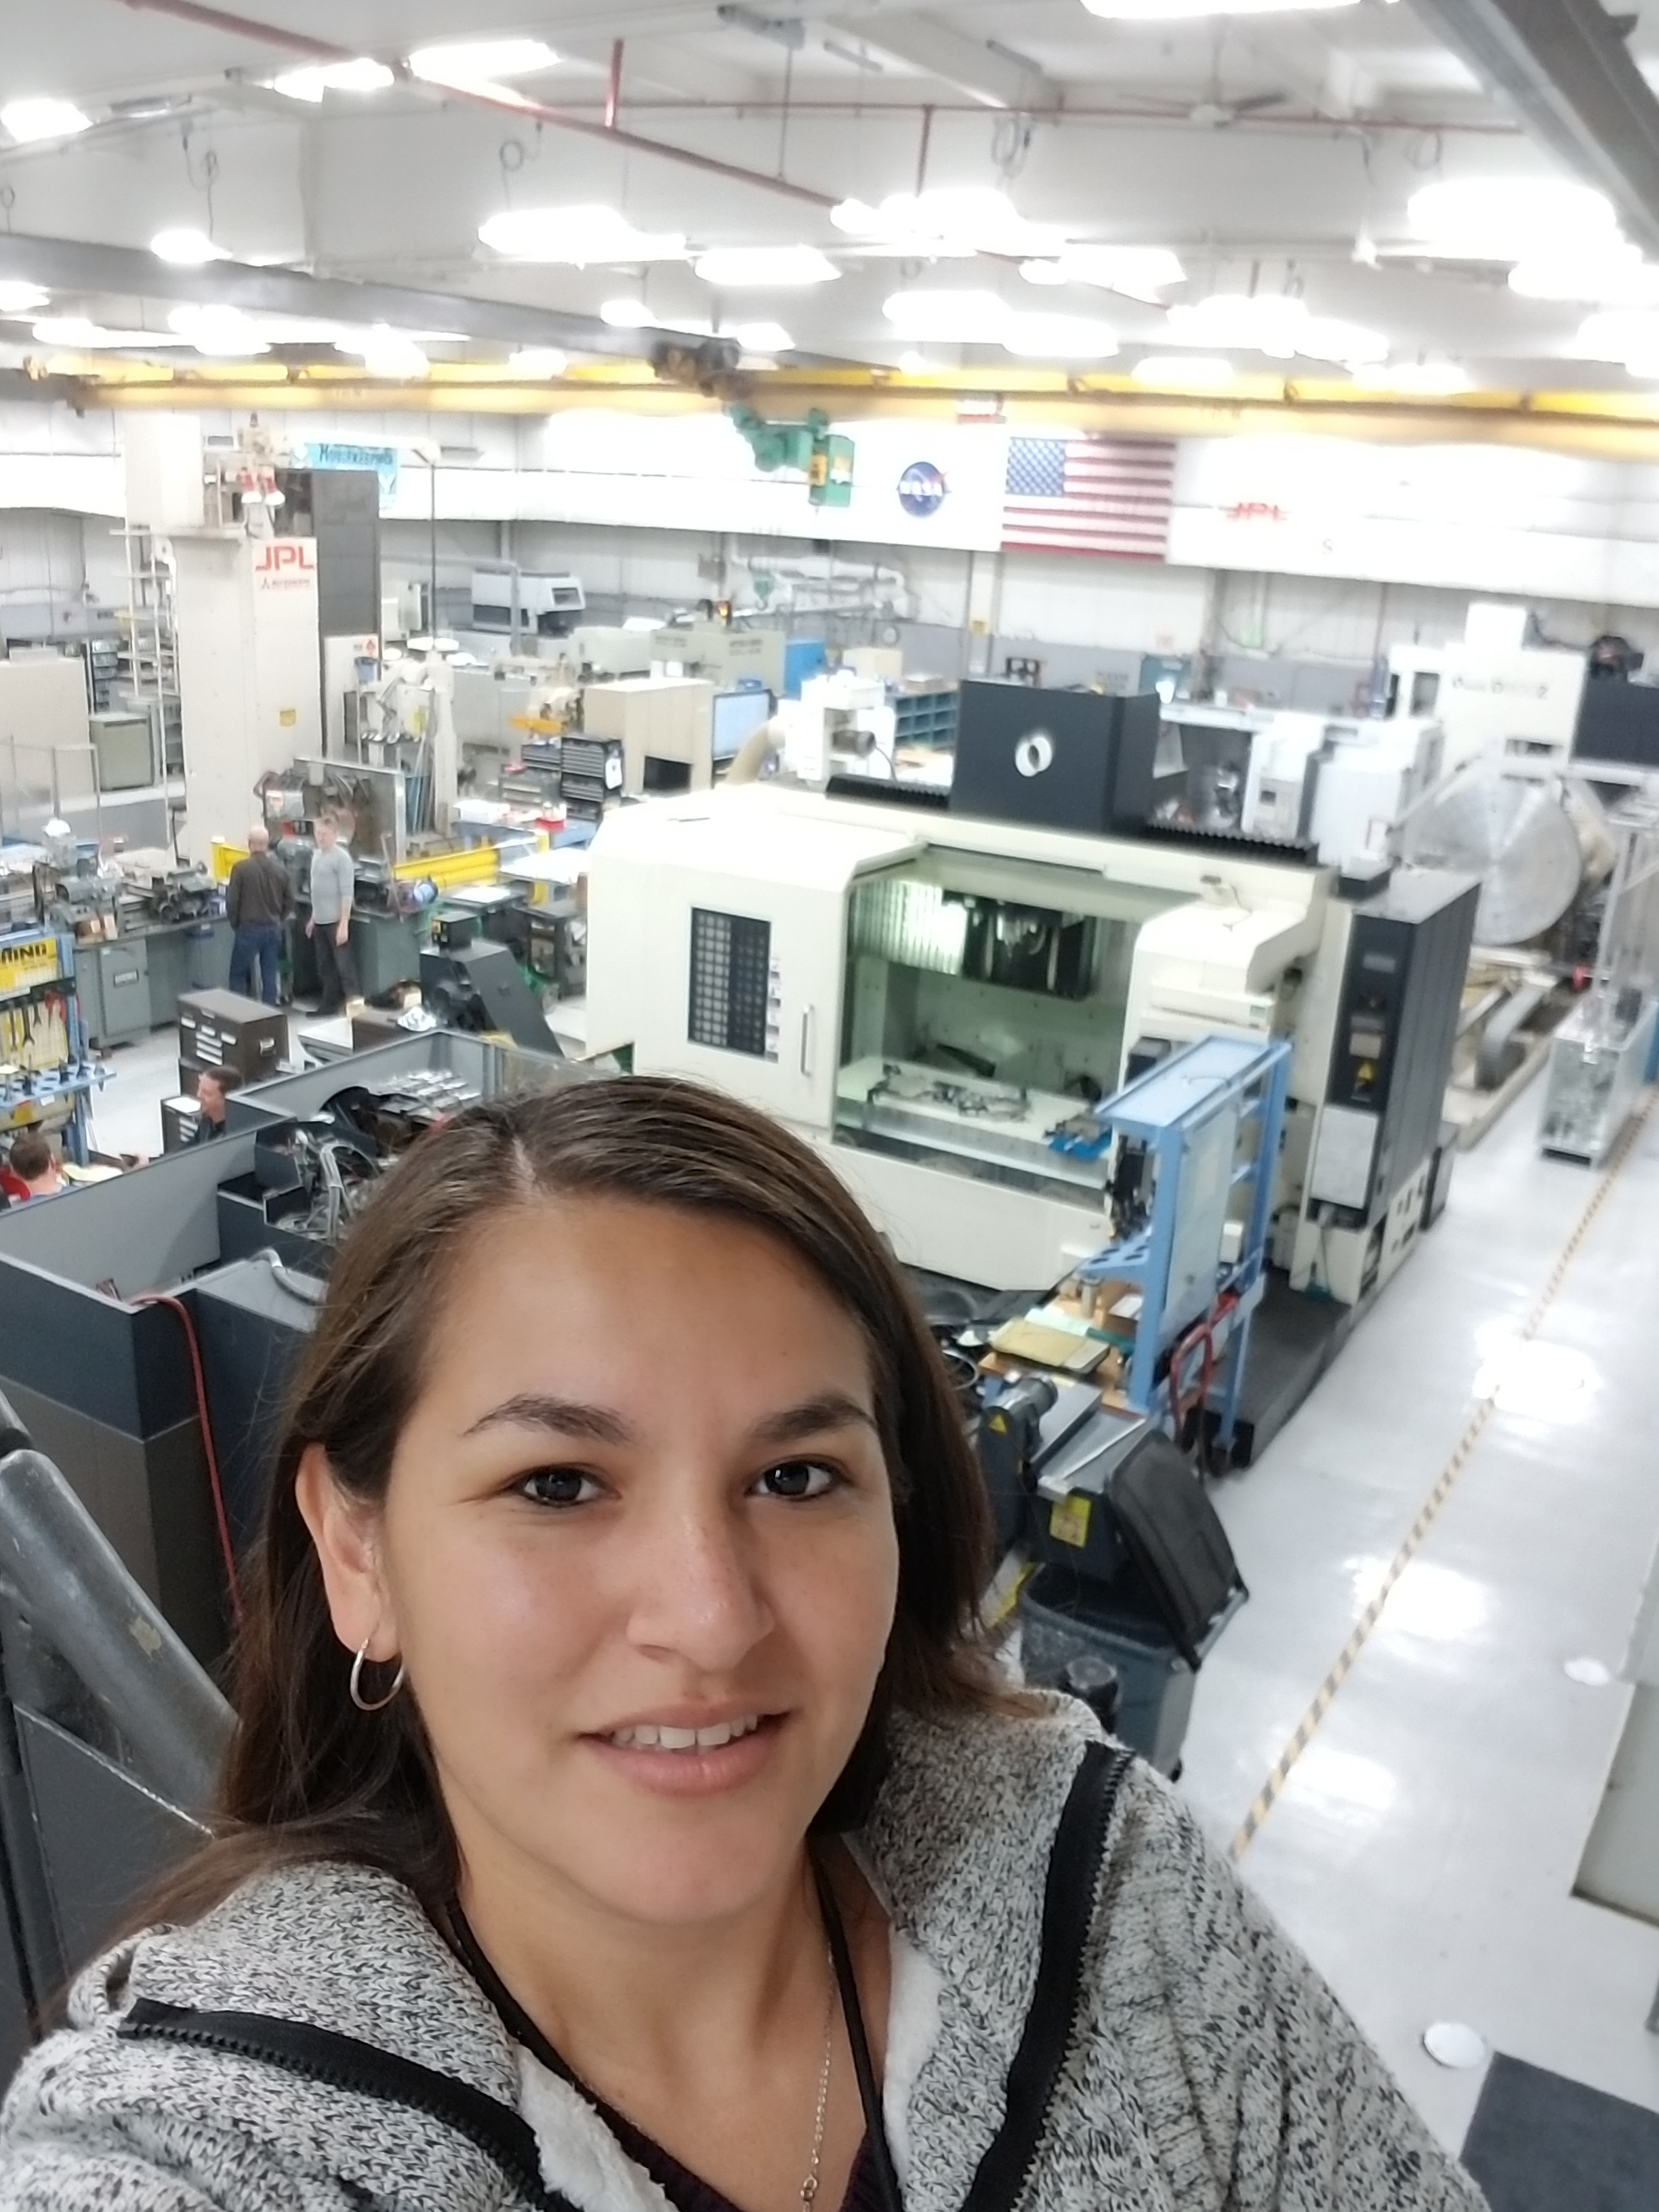 Lorena Ornelas-Estrada is a business administrator at JPL